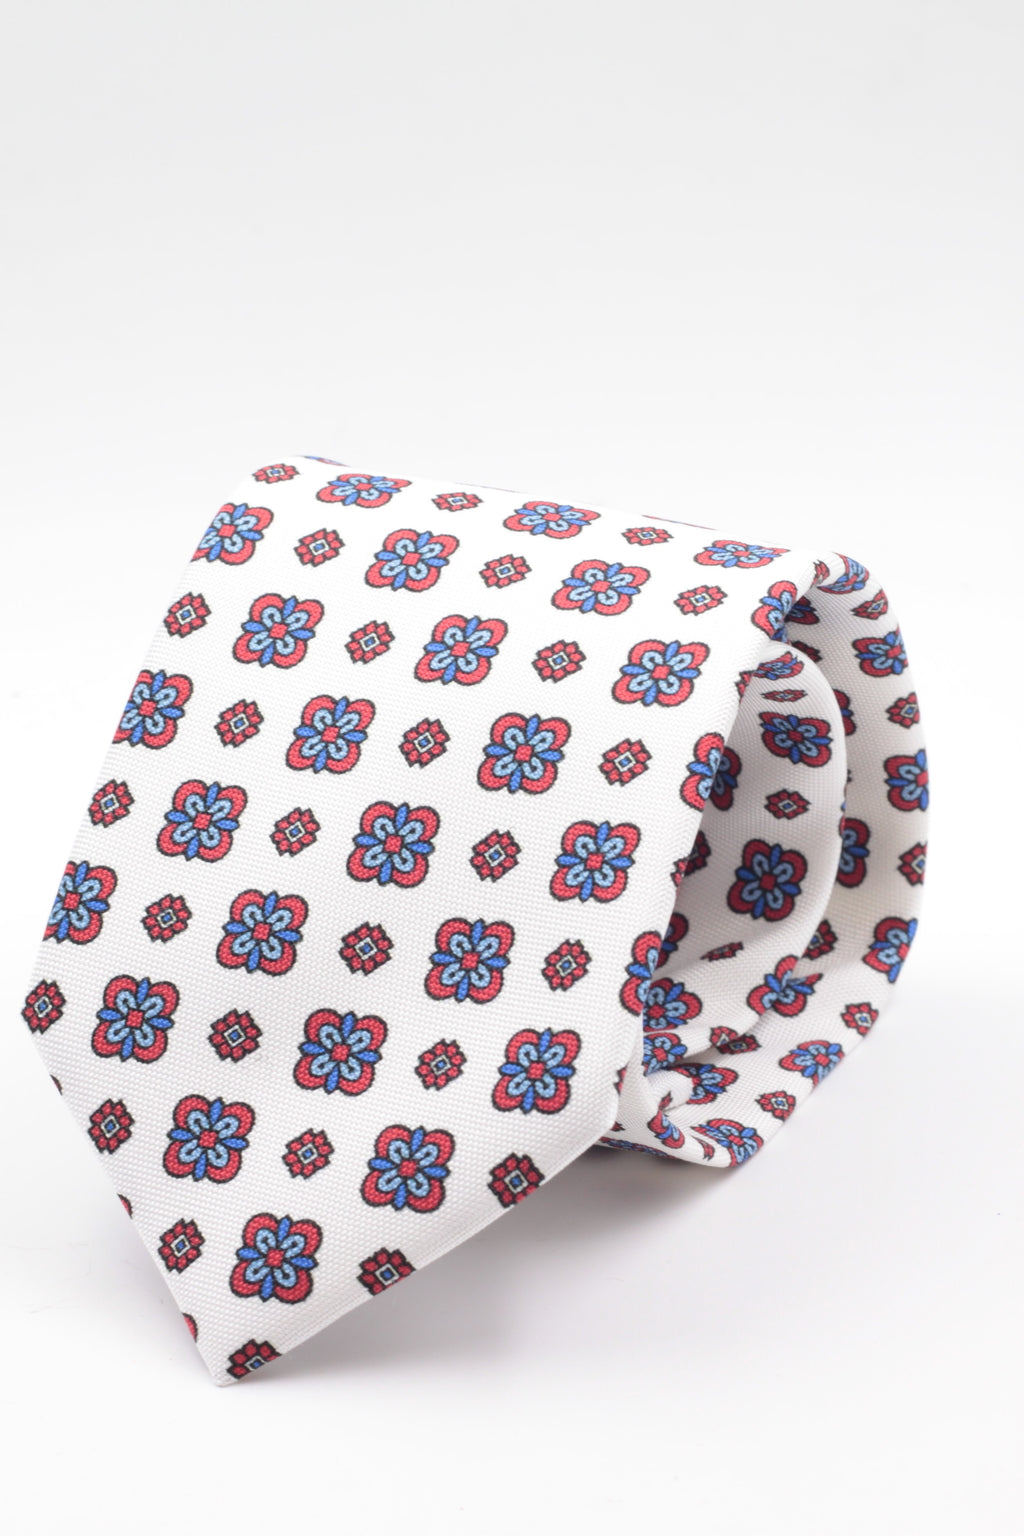 100% Printed Panama Silk Italian fabric Self Tipped White, red, Olympic blue and light blue motif tie Handmade in Italy 8 cm x 150 cm